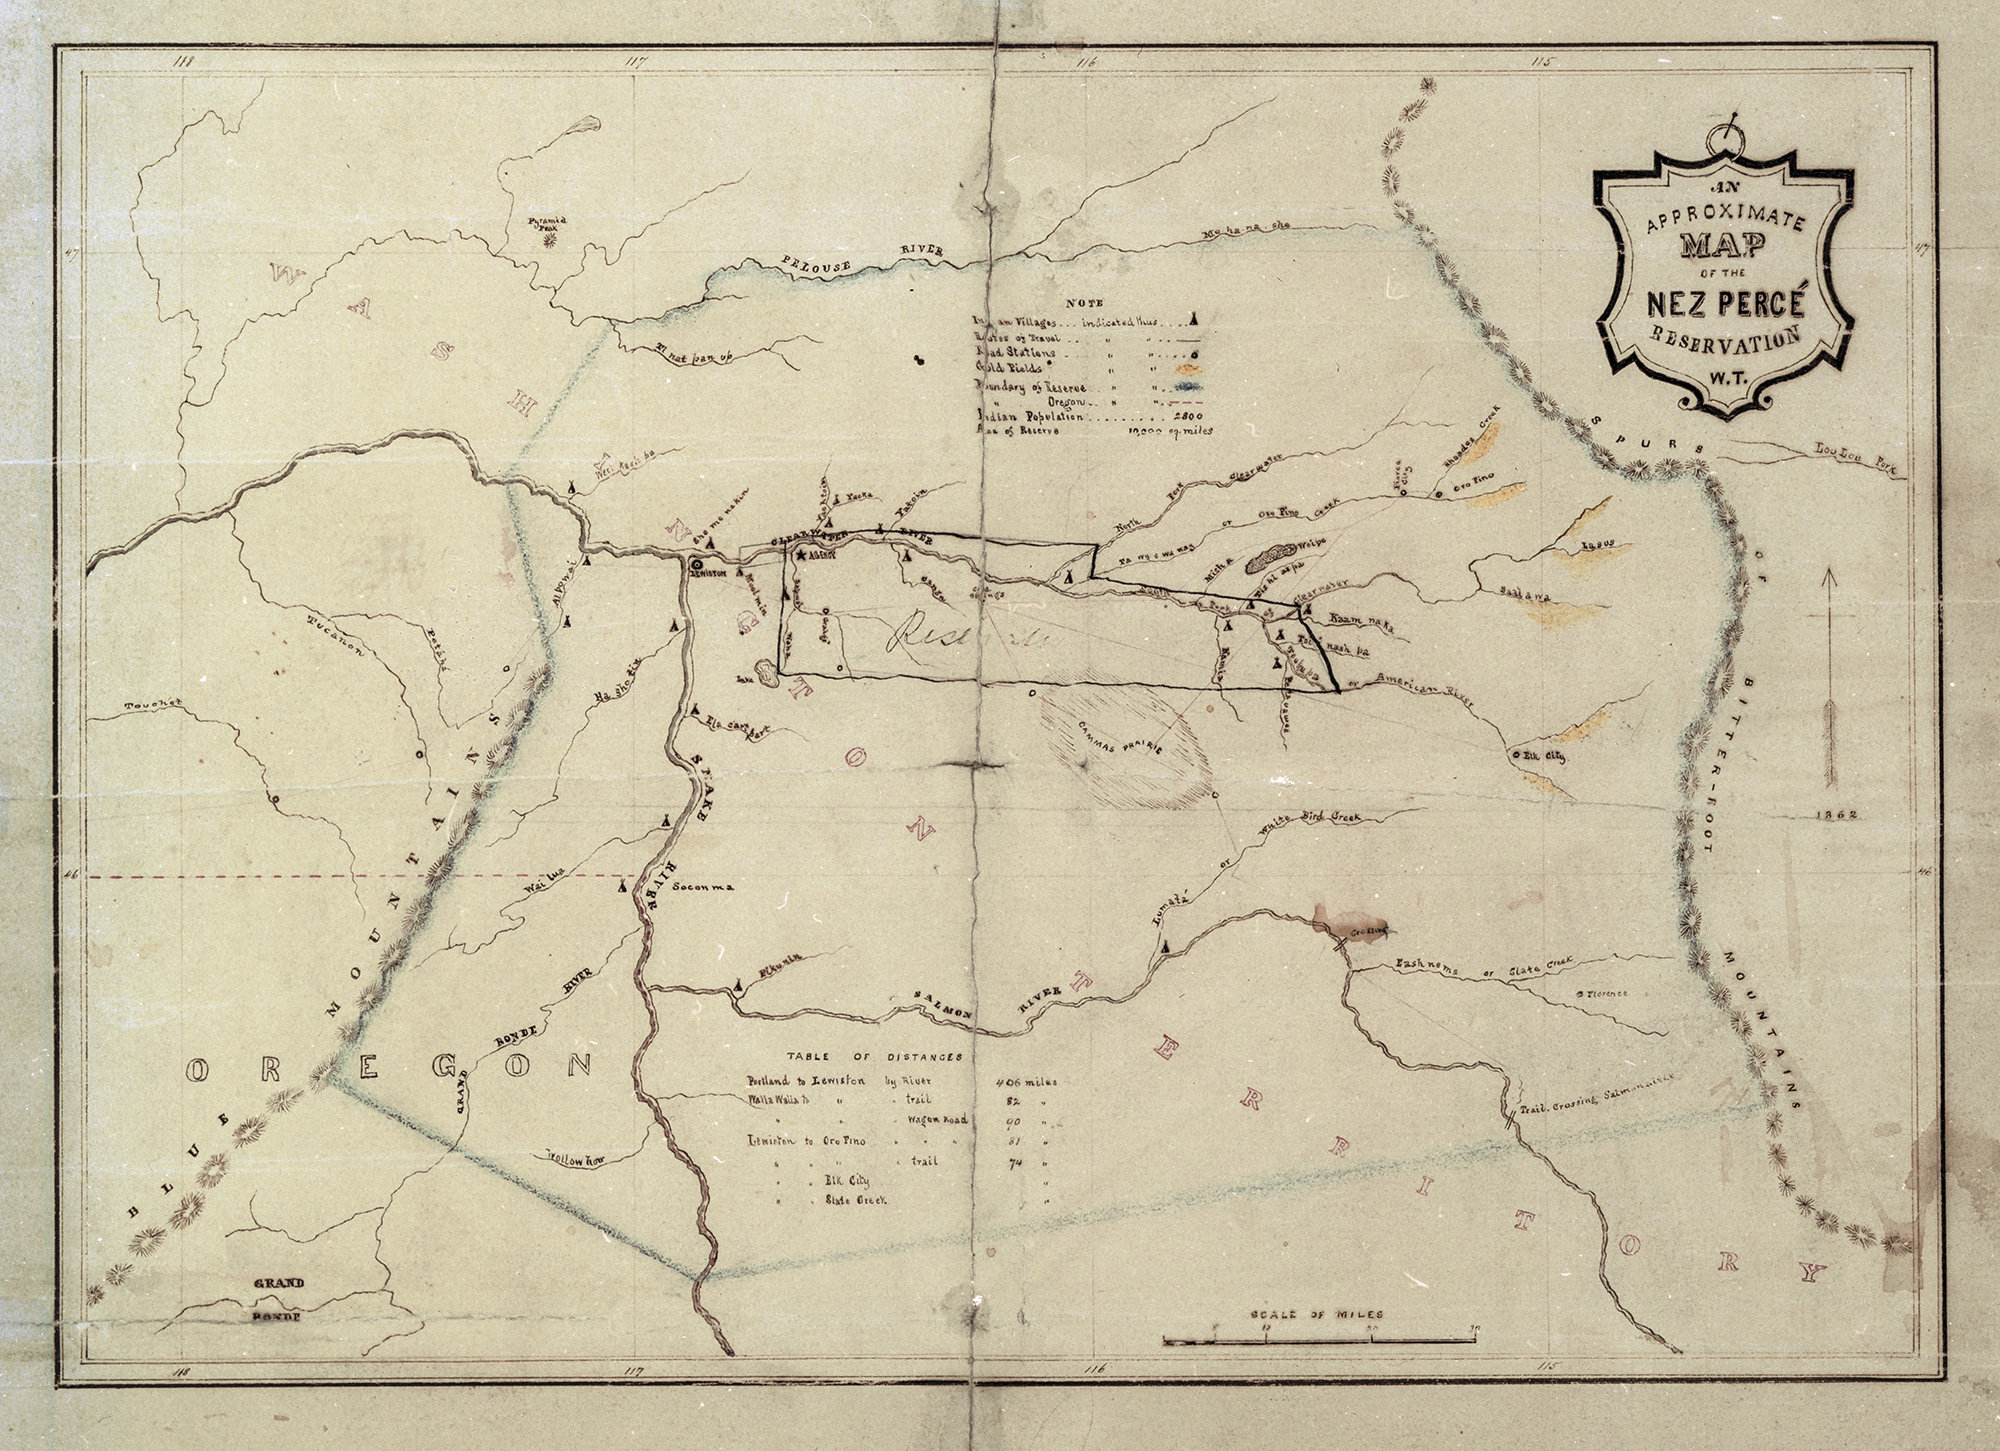 Approximate map of Nez Perce Reservation, c. 1855